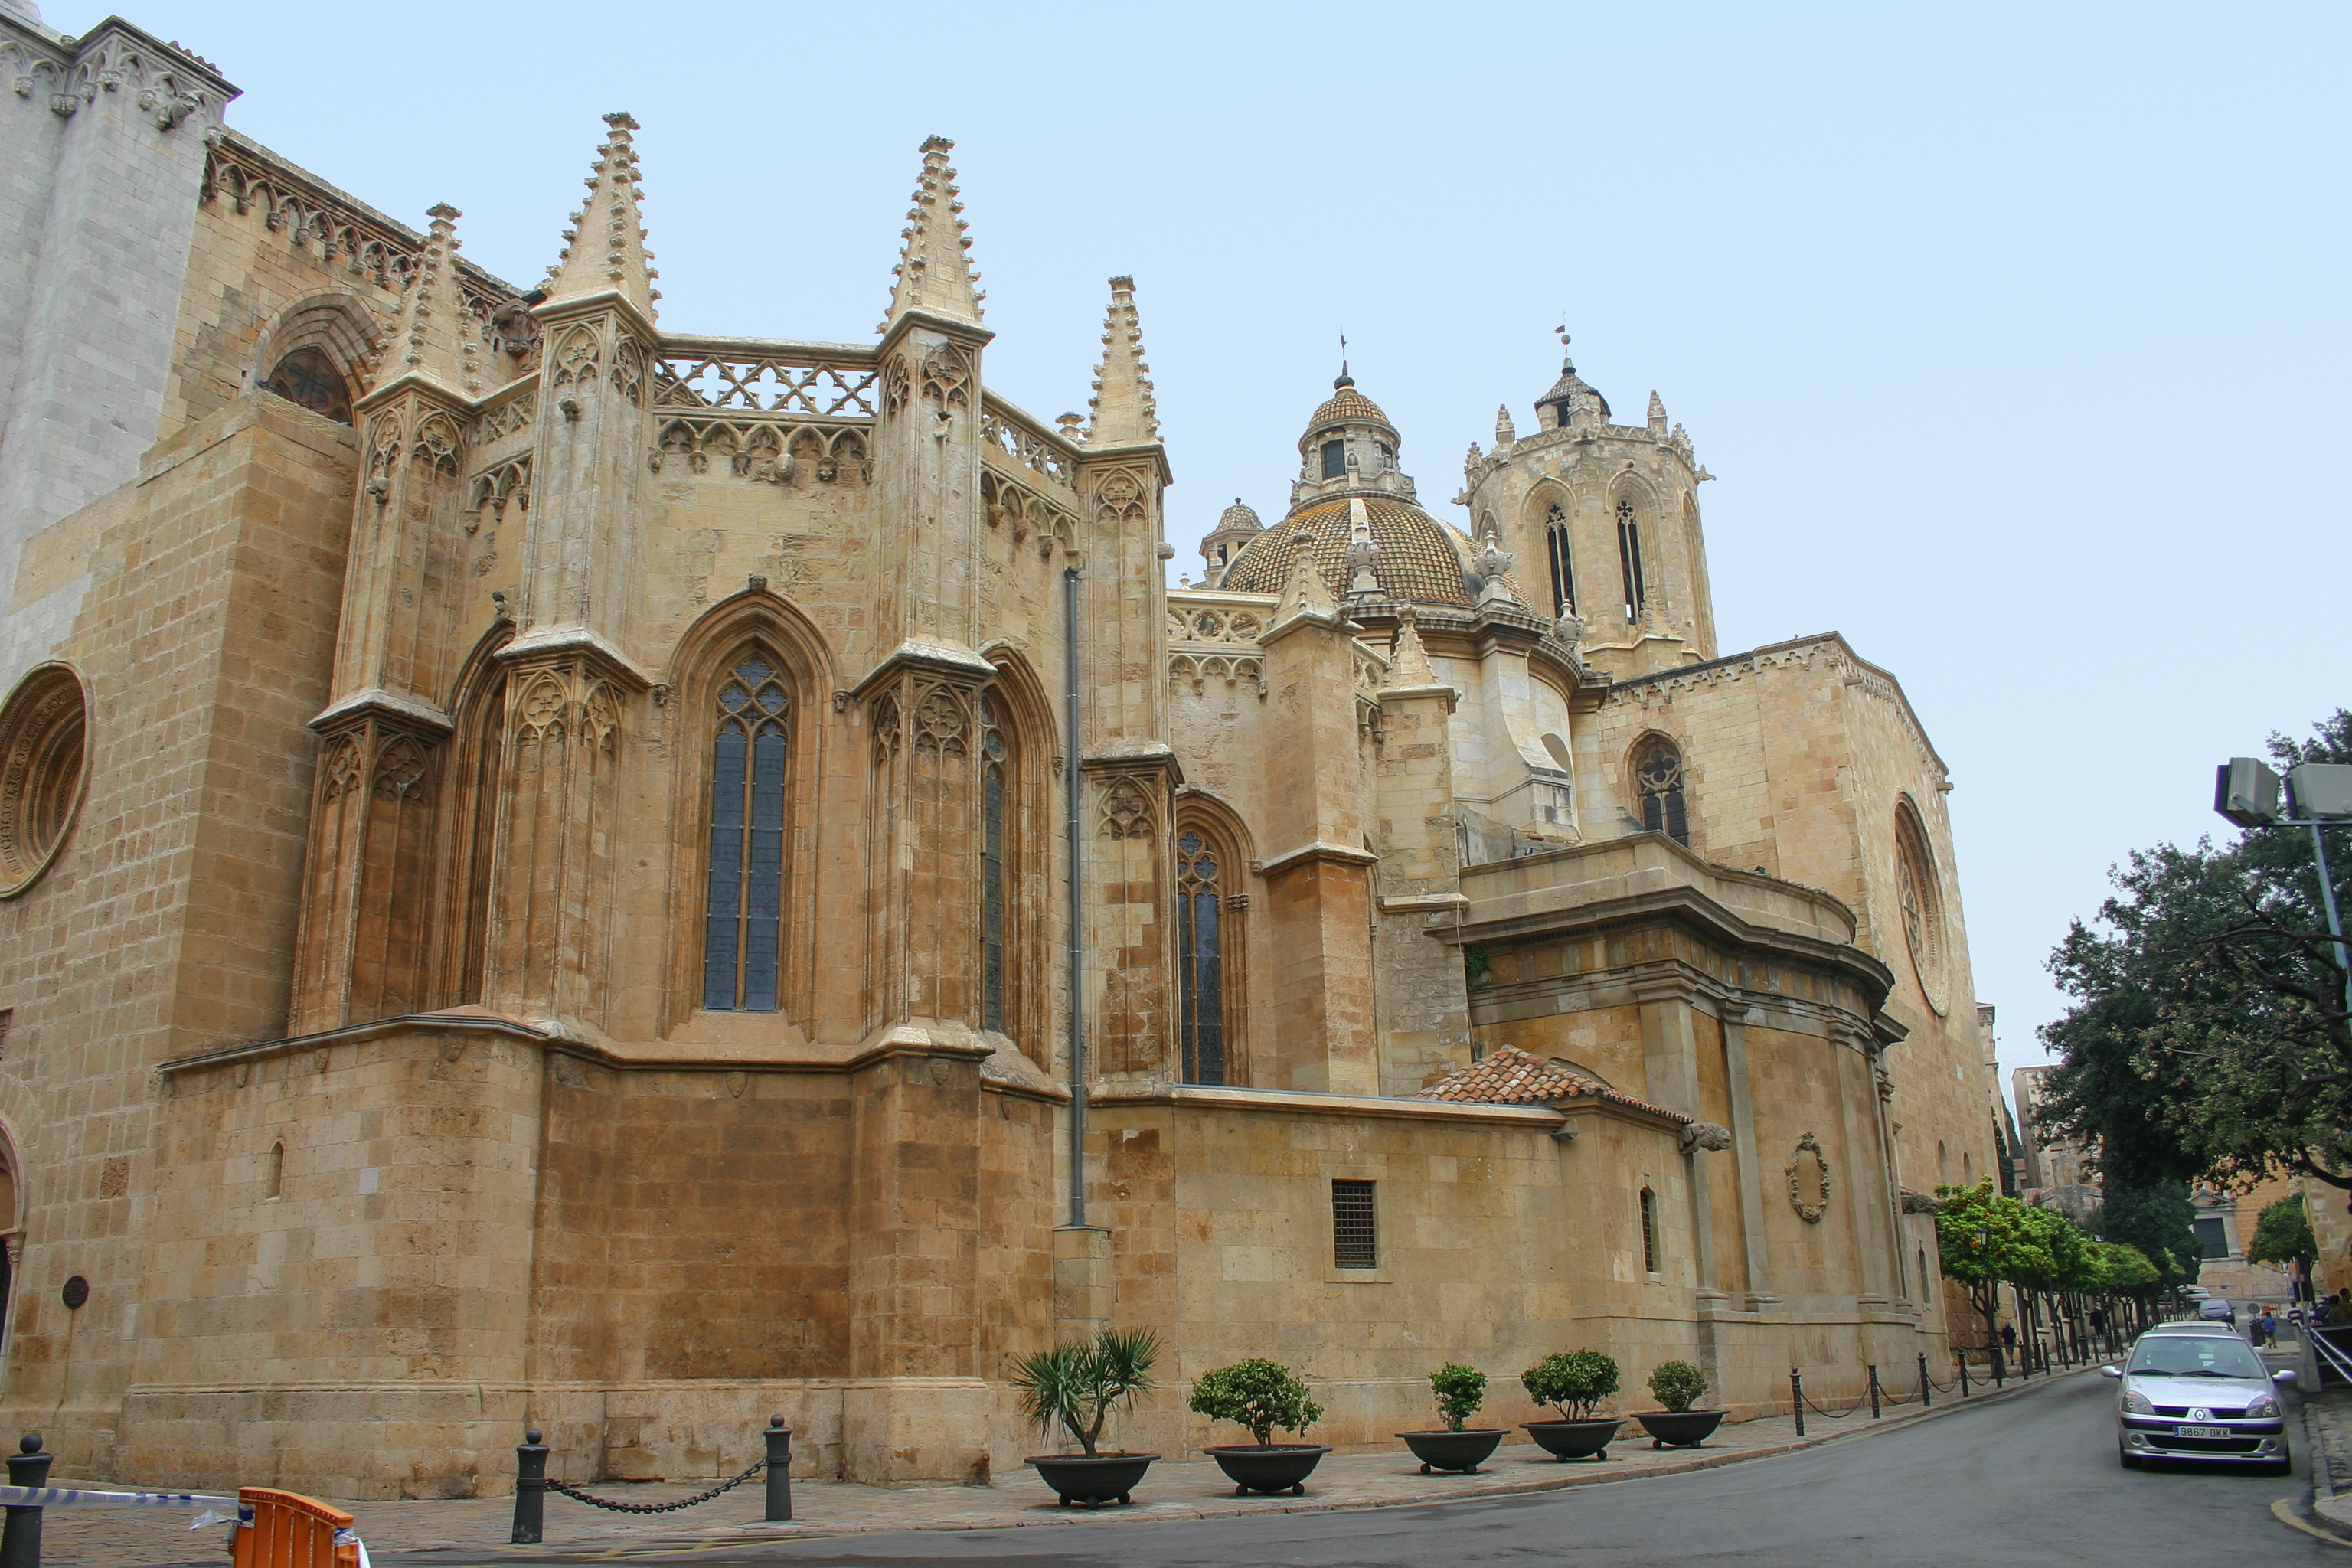 File:Spain.Tarragona.Catedral.Conques.02.JPG - Wikimedia Commons